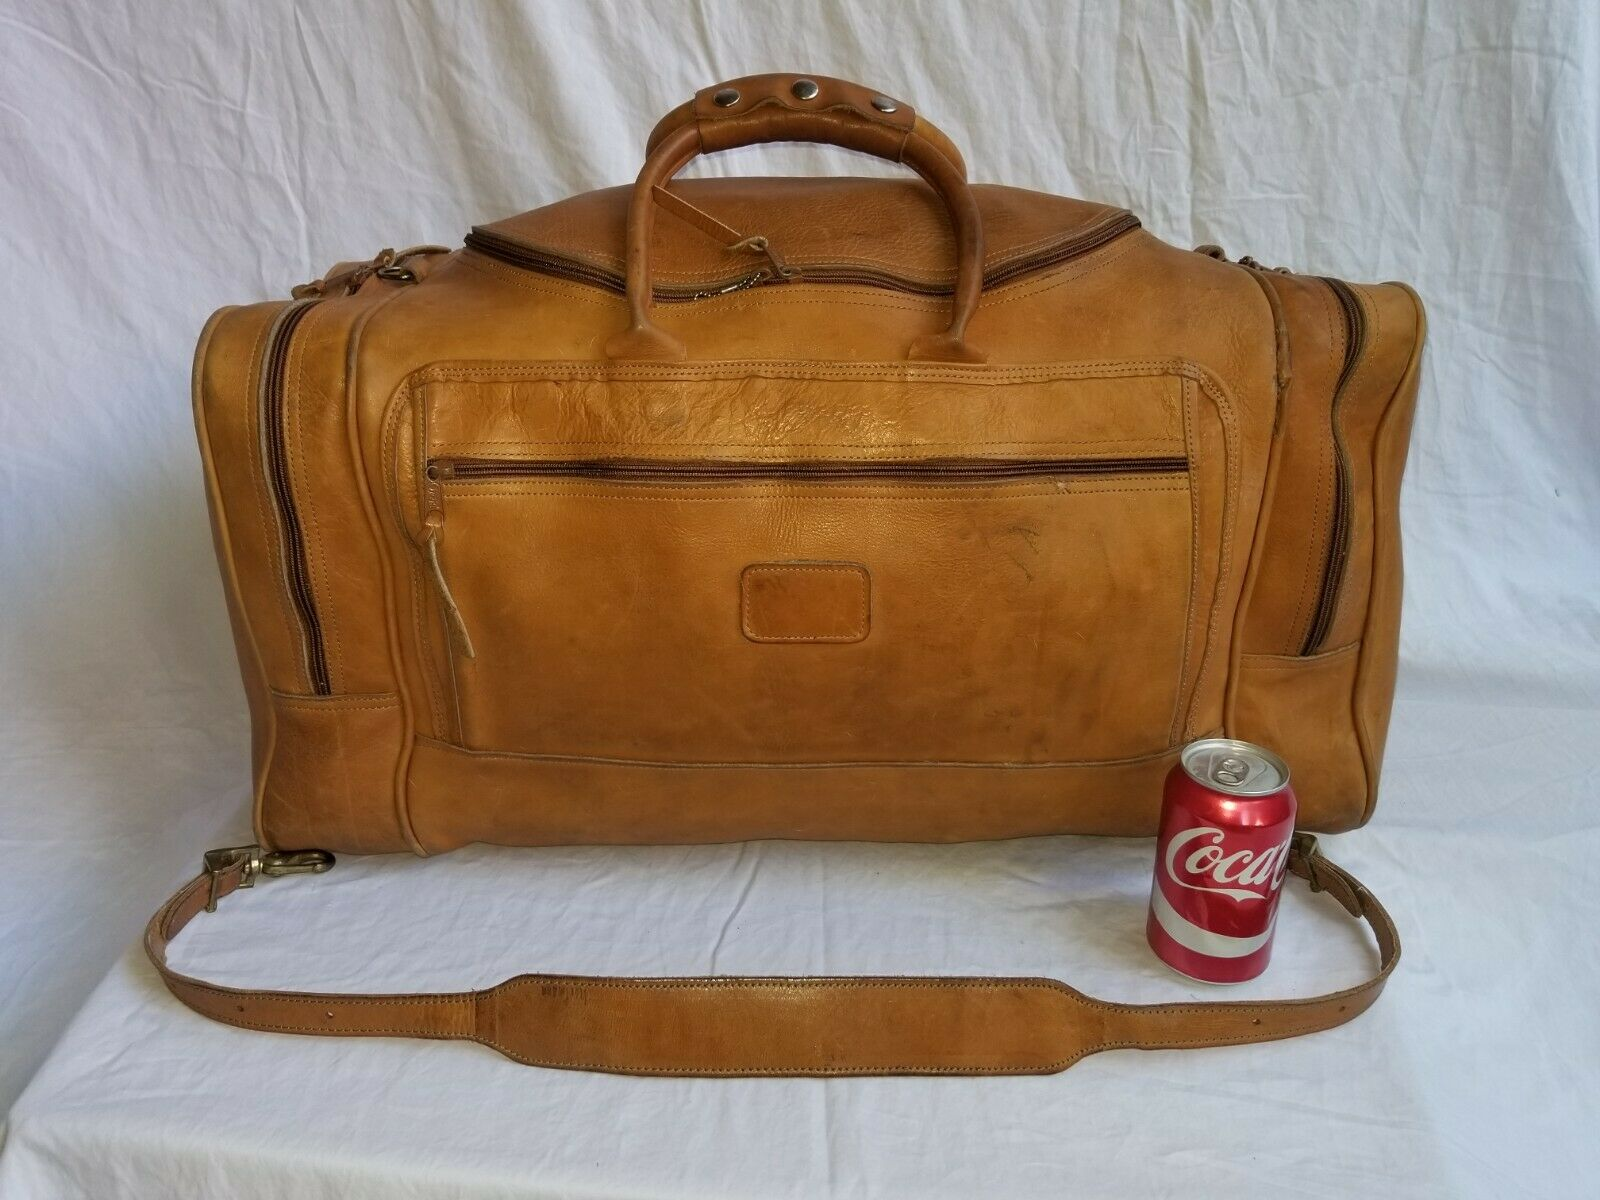 Vintage ORVIS British Tan Leather 26 Duffel Bag MADE IN USA - $149.00